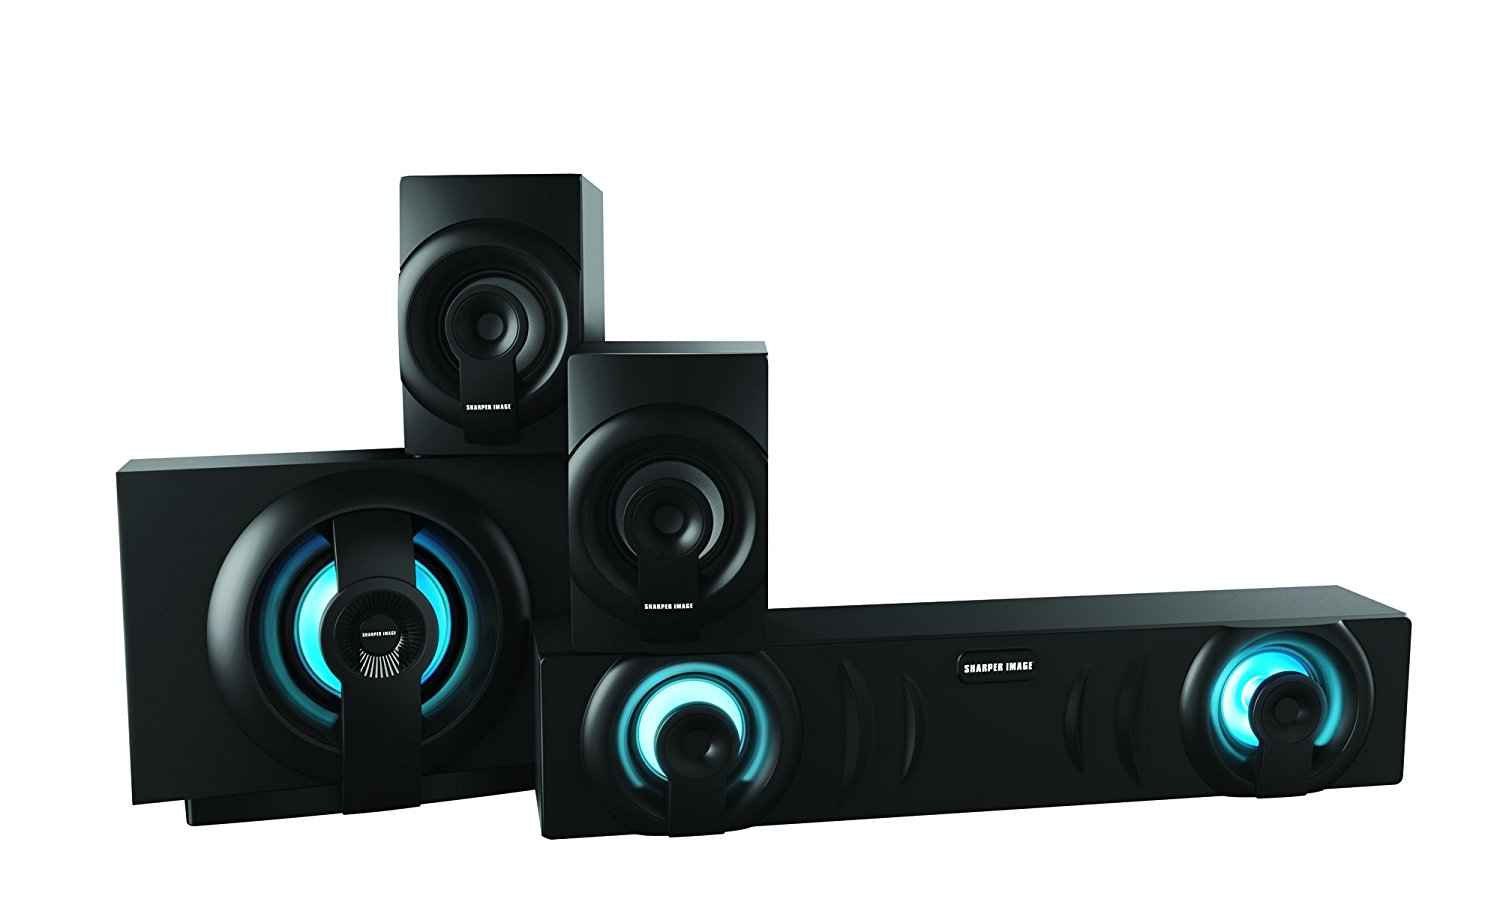 Sharper IMage SBT3009BK Home Theater In a Box 3.1 Sound System With Subwoofer, Bluetooth Streaming From Any... by Sharper Image